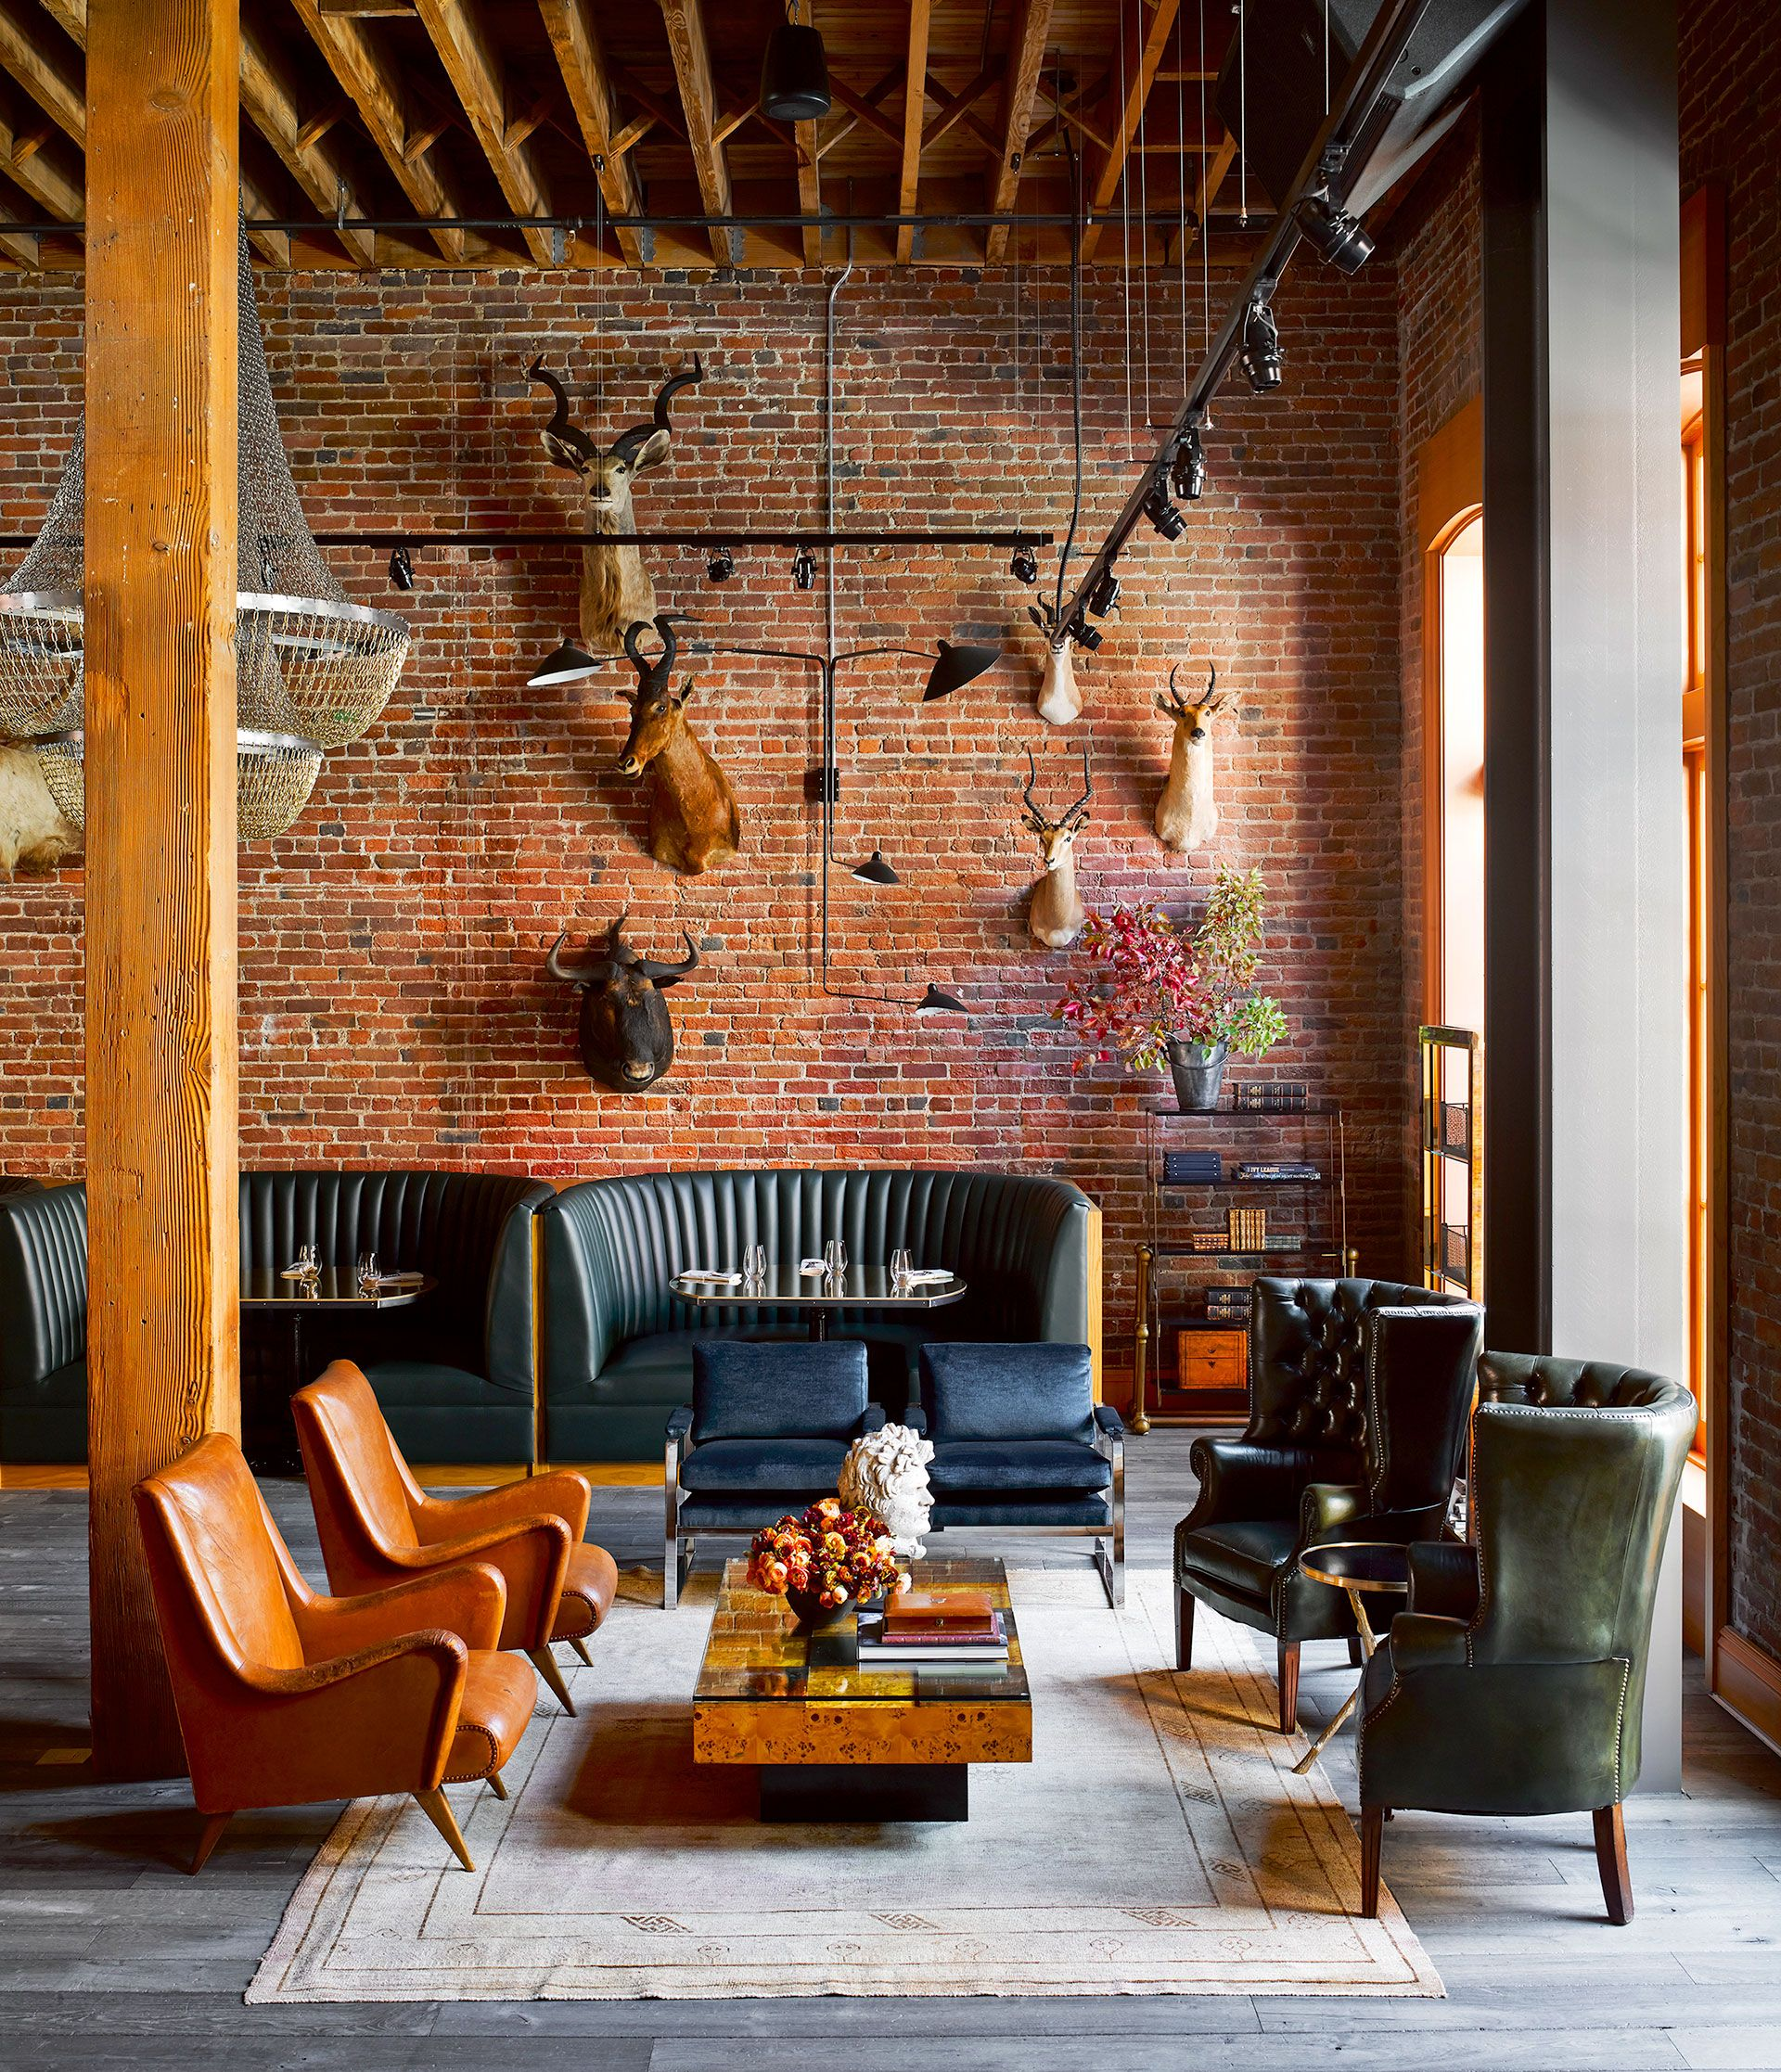 Apartment Guide San Francisco: More Great Instagram Hotel Photos